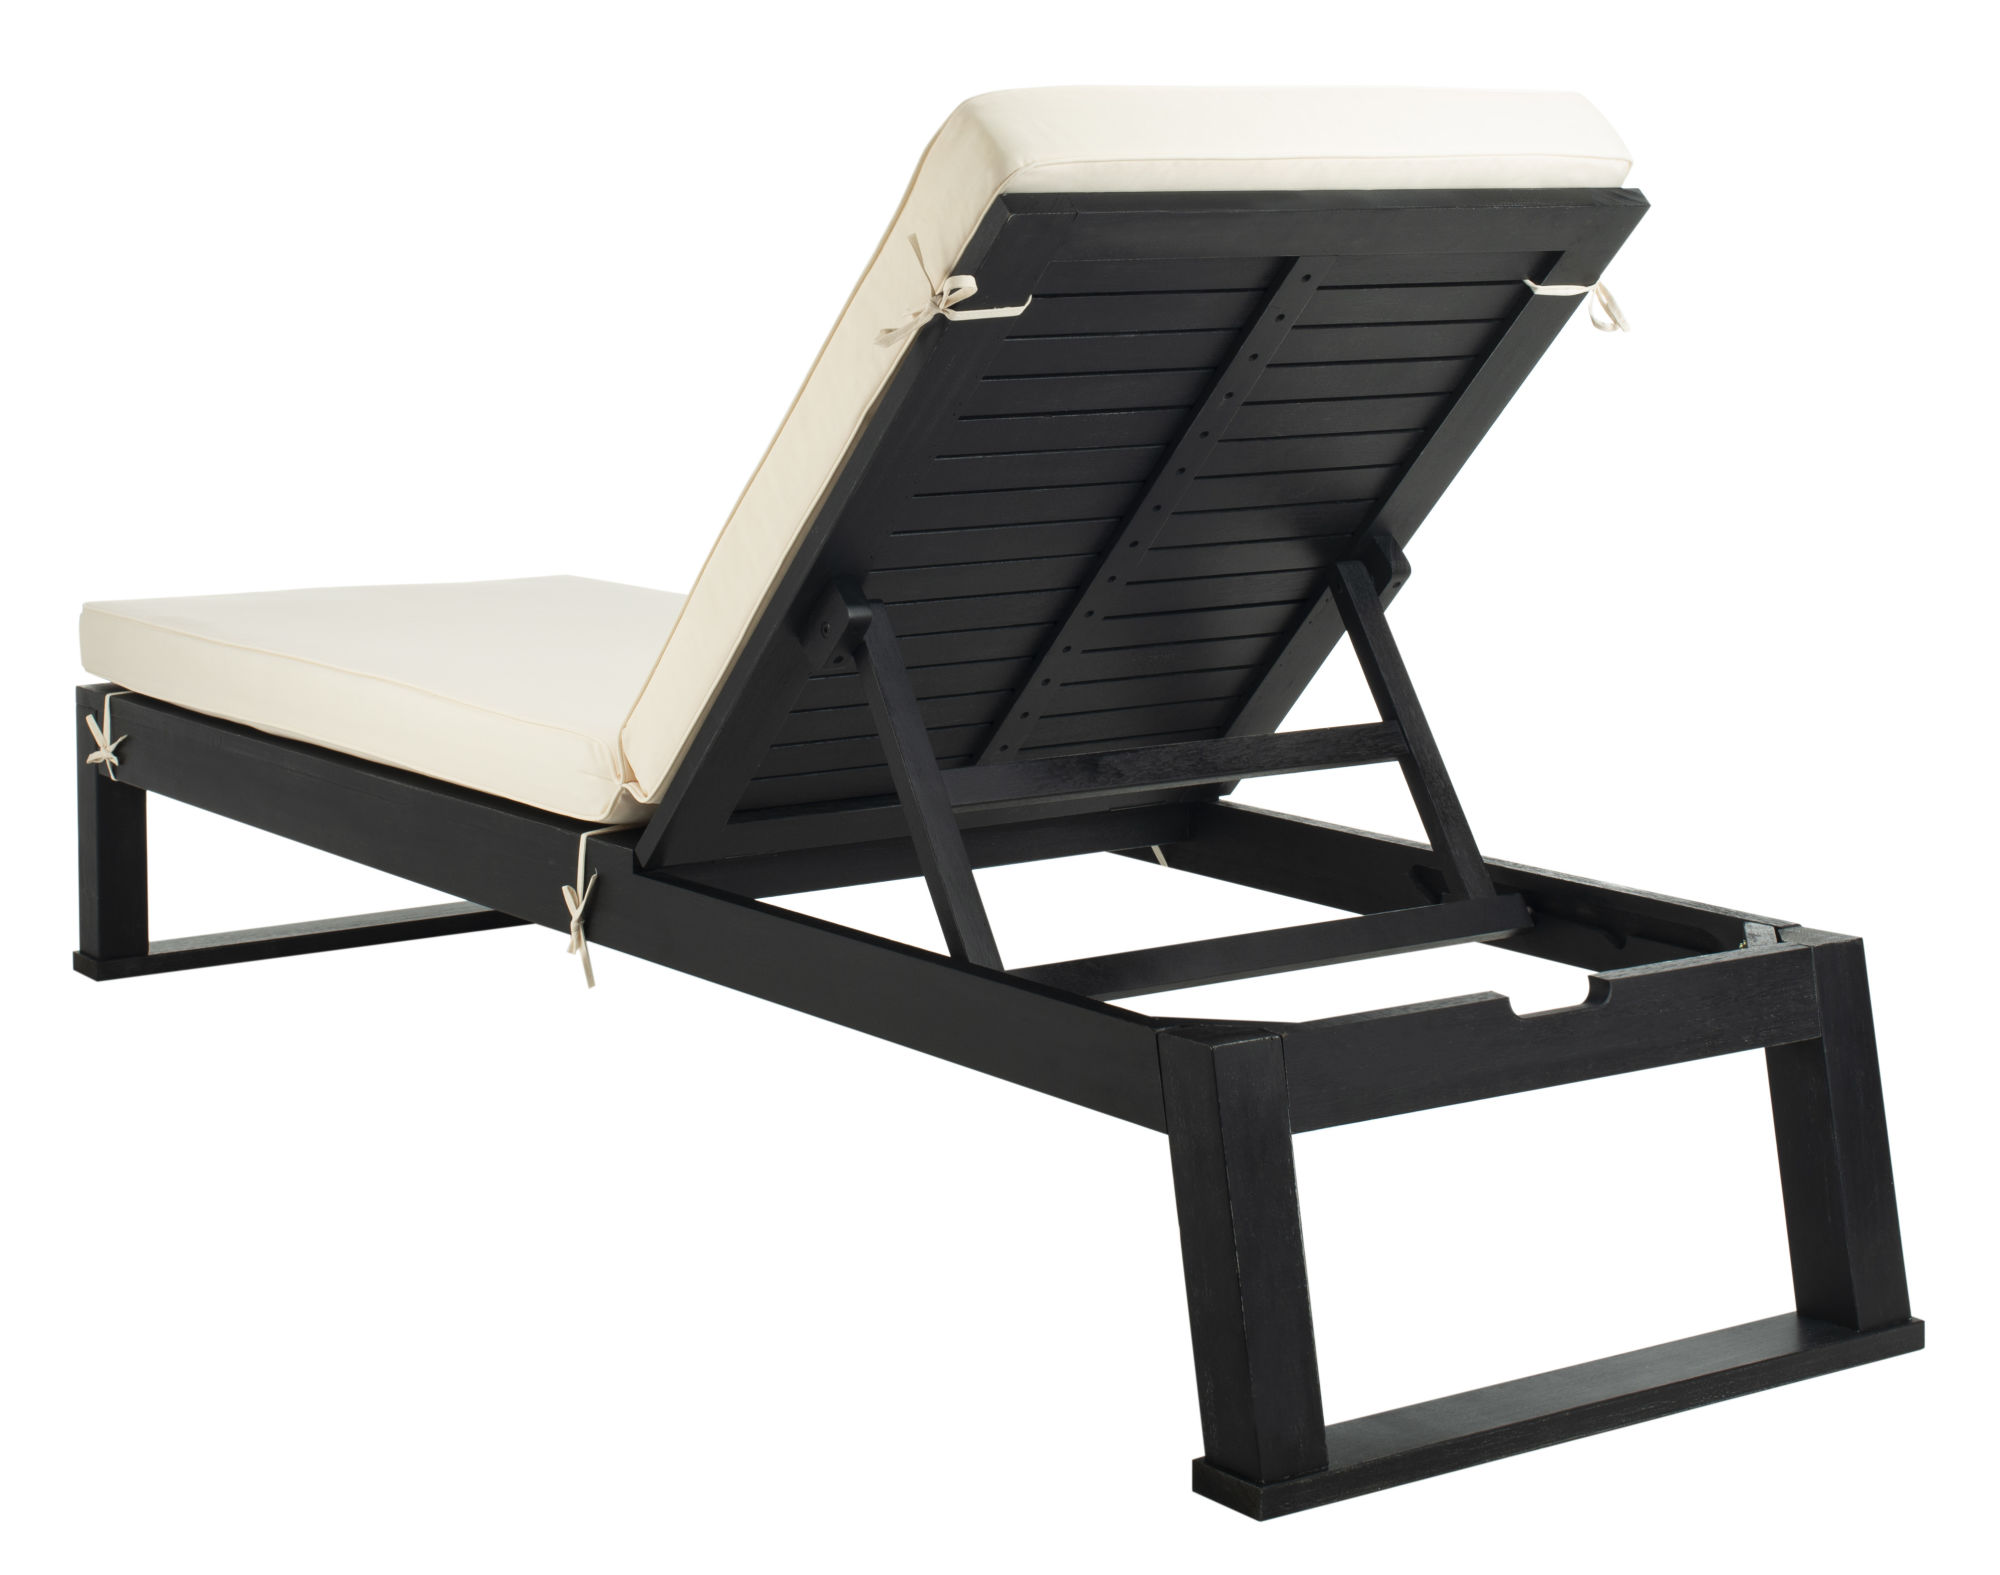 Solano Sunlounger on Safavieh Outdoor Living Solano Sunlounger id=60650